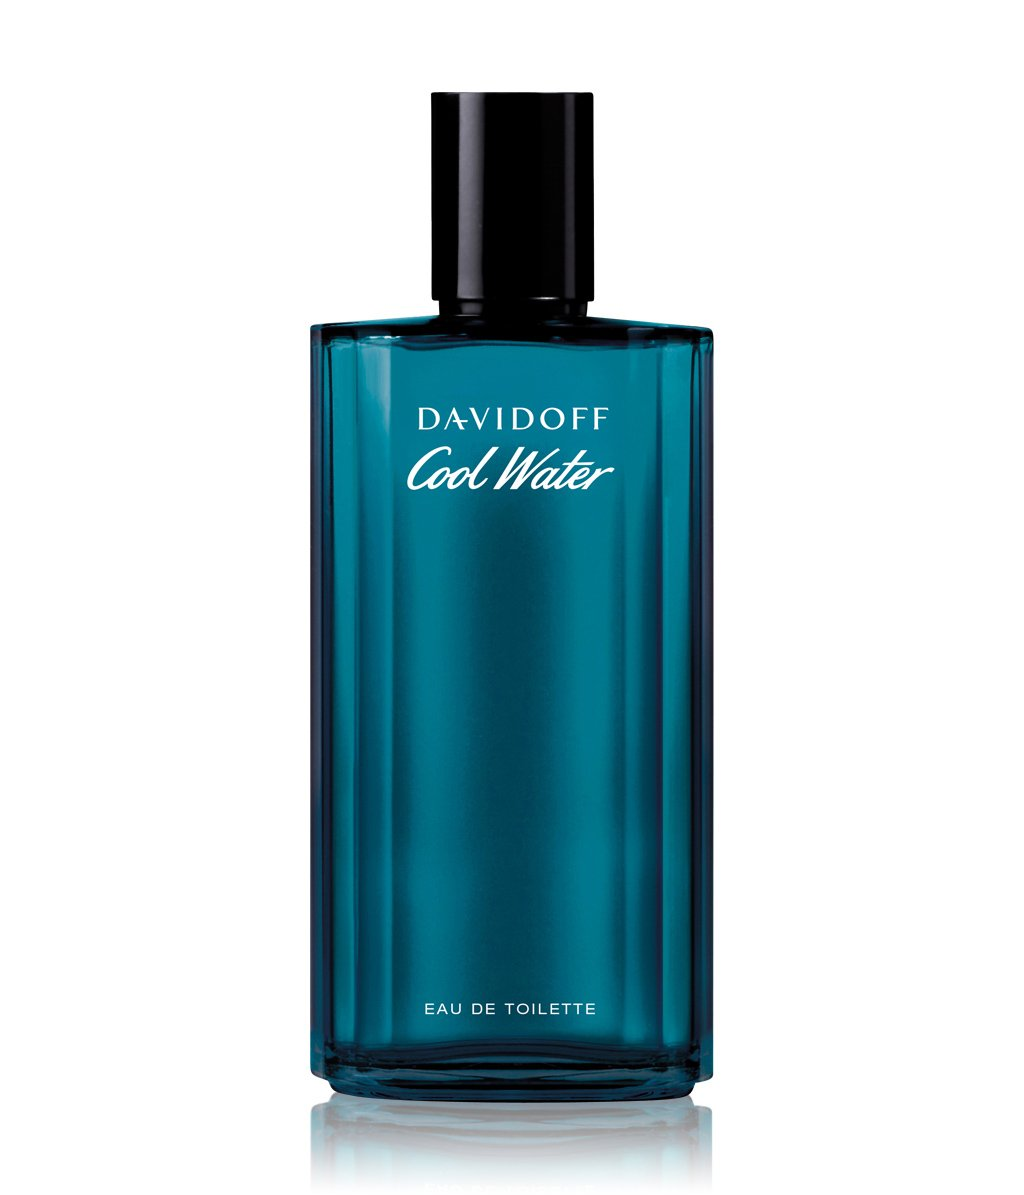 davidoff cool water parfum kaufen gratisversand flaconi. Black Bedroom Furniture Sets. Home Design Ideas